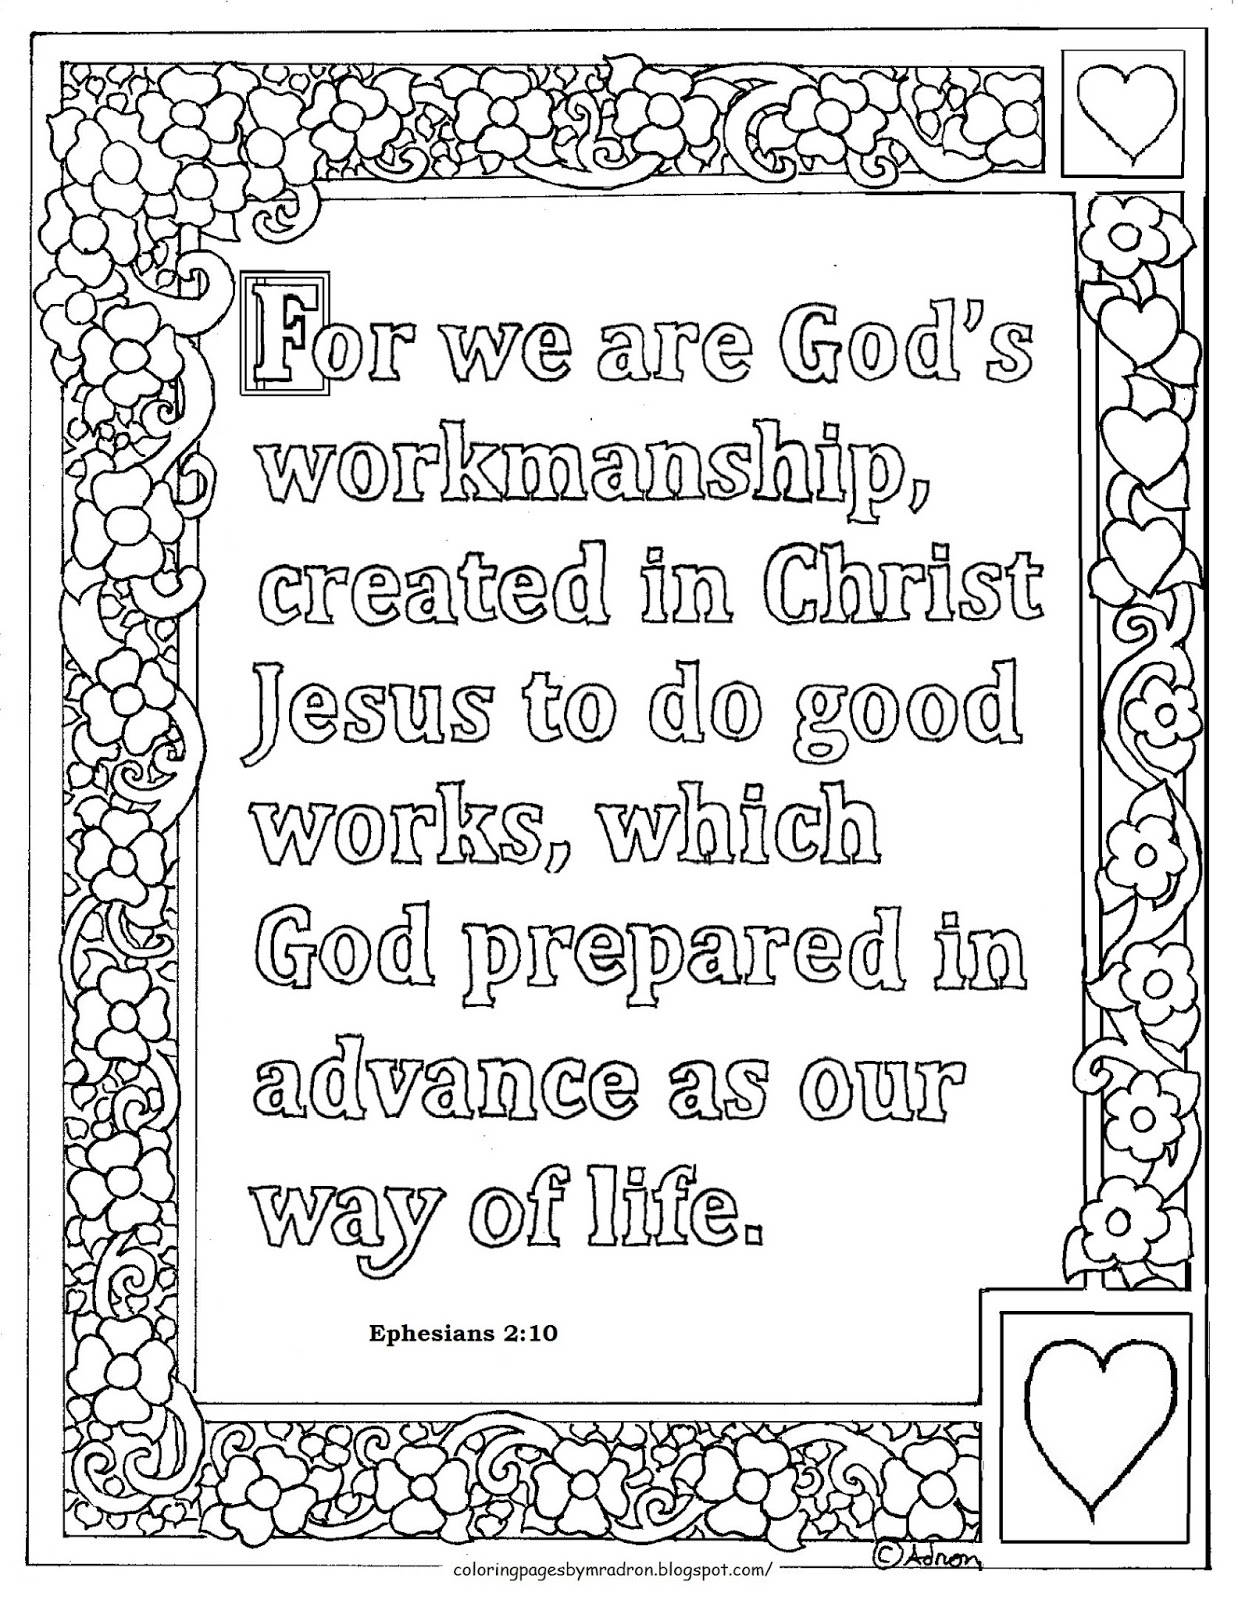 ephesians 2 8 coloring page ephesians 432 color pages google search ephesians 4 coloring 2 page ephesians 8